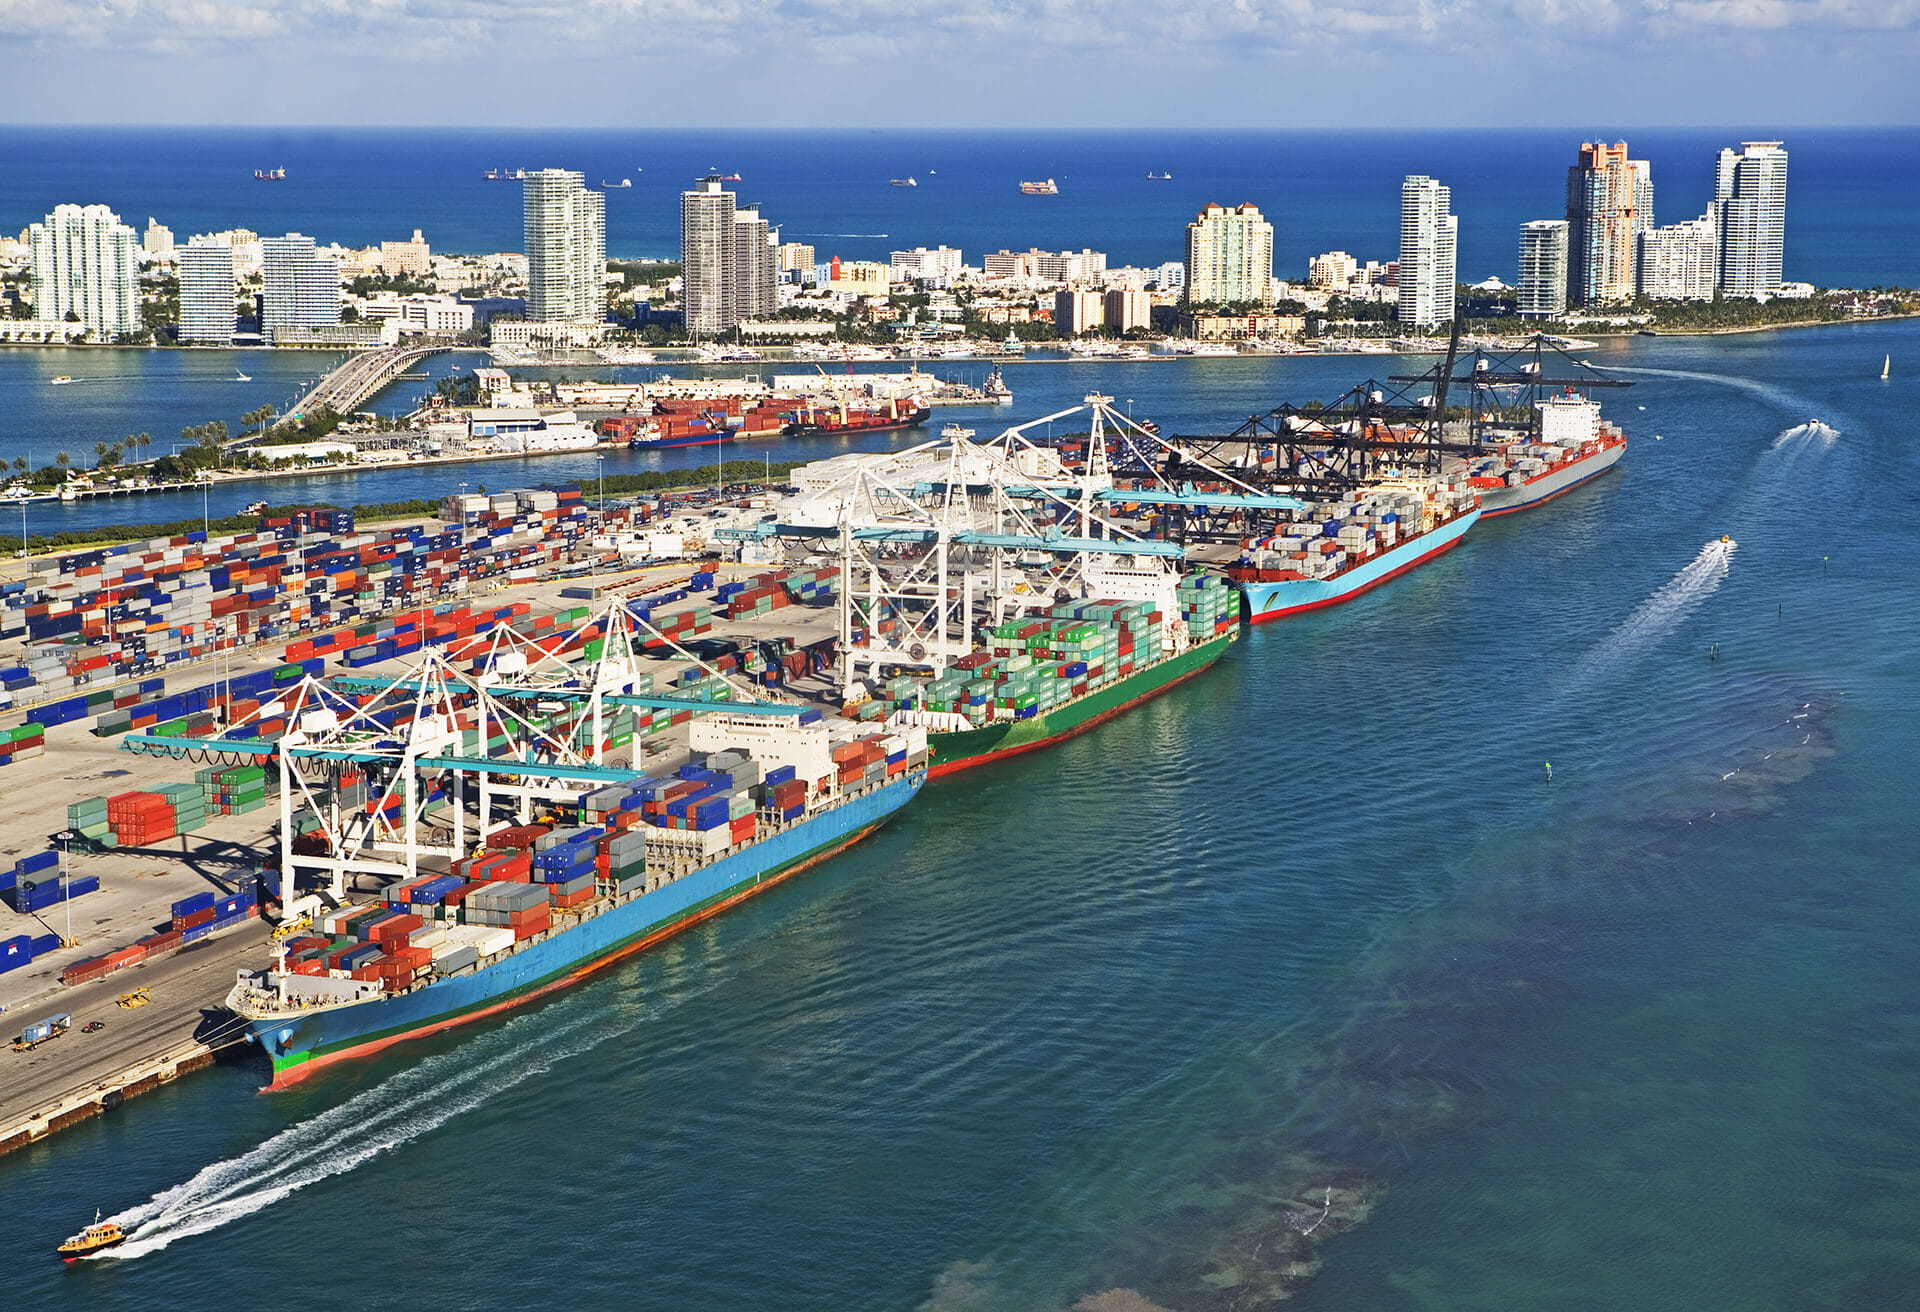 Aerial view of Miami Commercial Dock